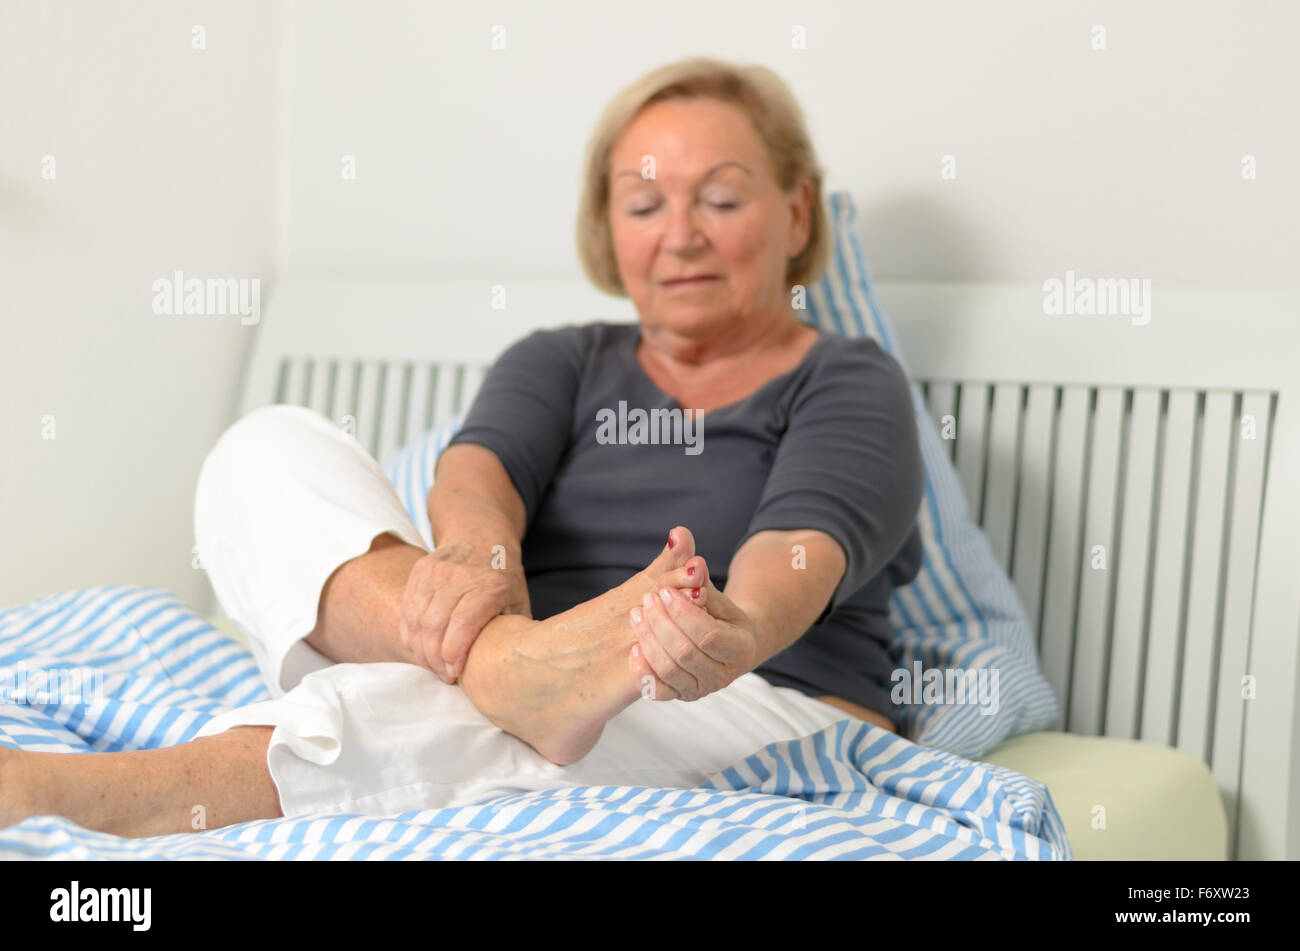 Senior lady massaging her bare foot to relive aches and pains as she sits relaxing against the pillows on her bed - Stock Image